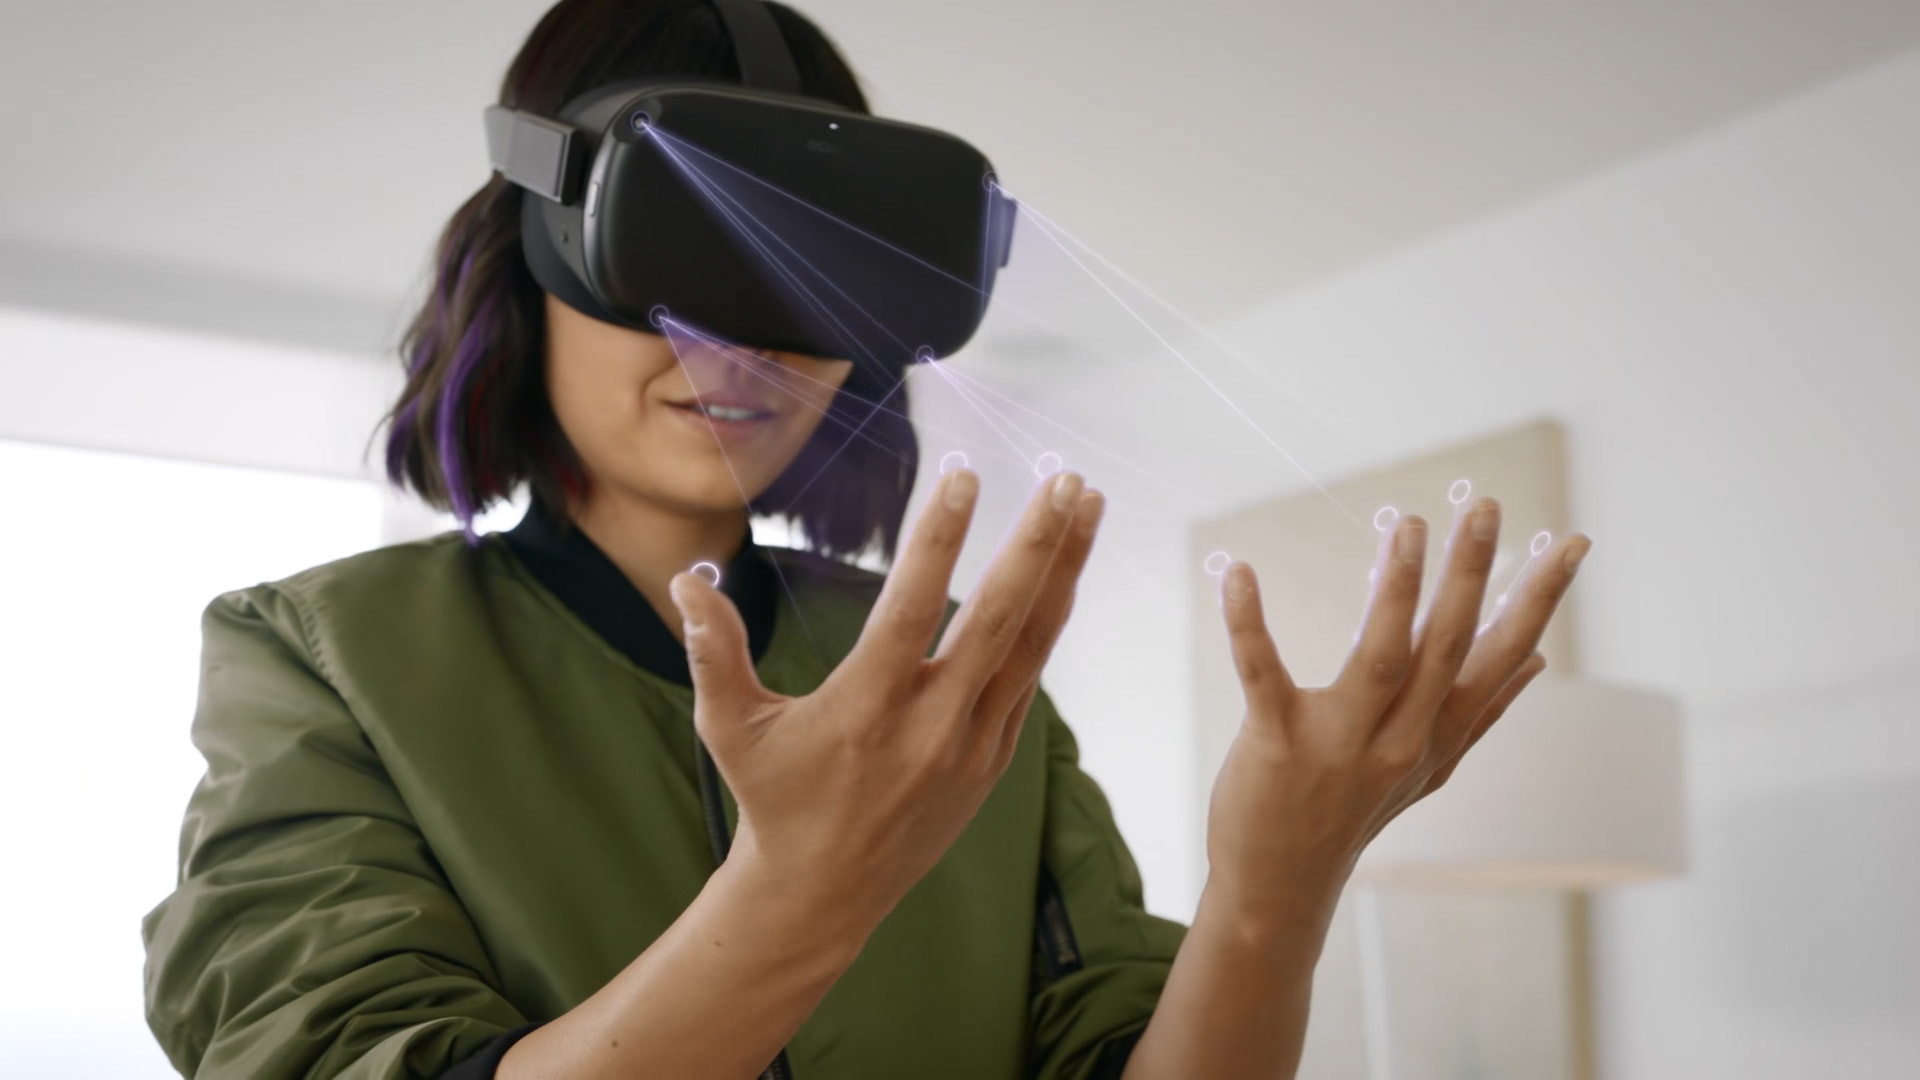 oculus_quest_connect6_stills_02